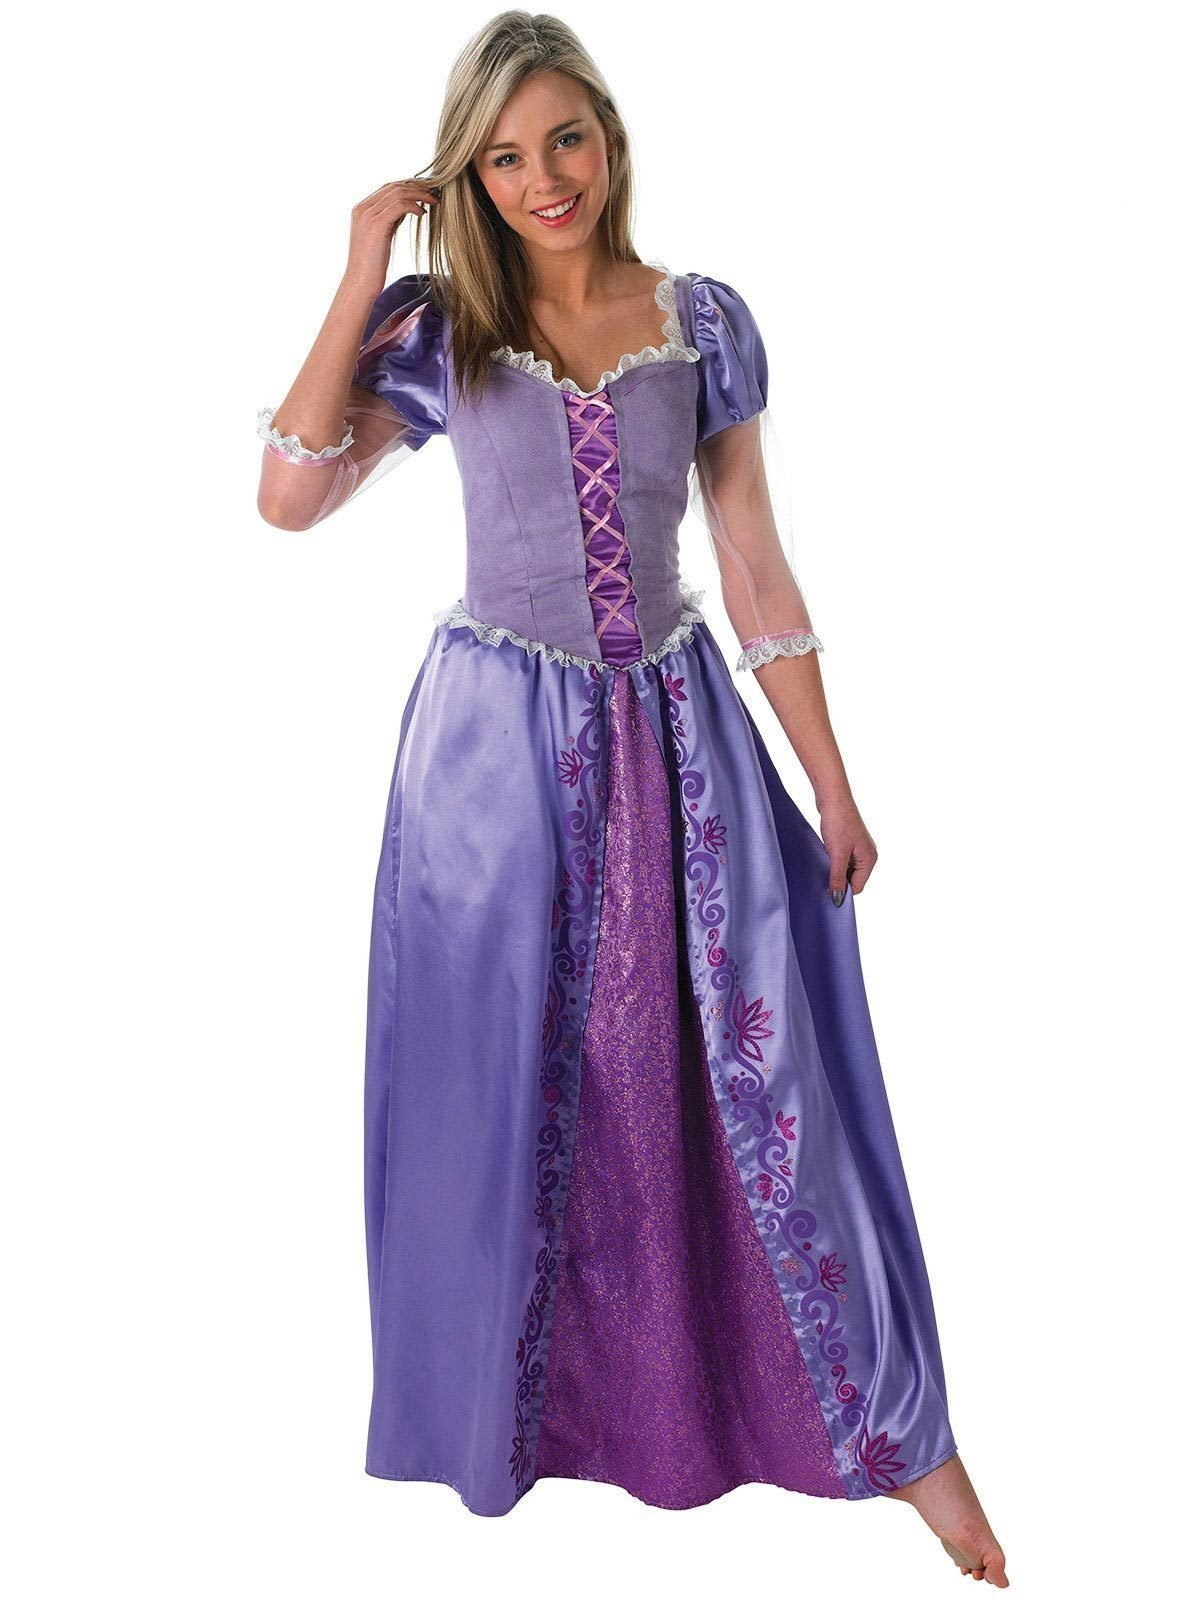 Rapunzel Deluxe Frozen 2 Costume - Buy Online Only